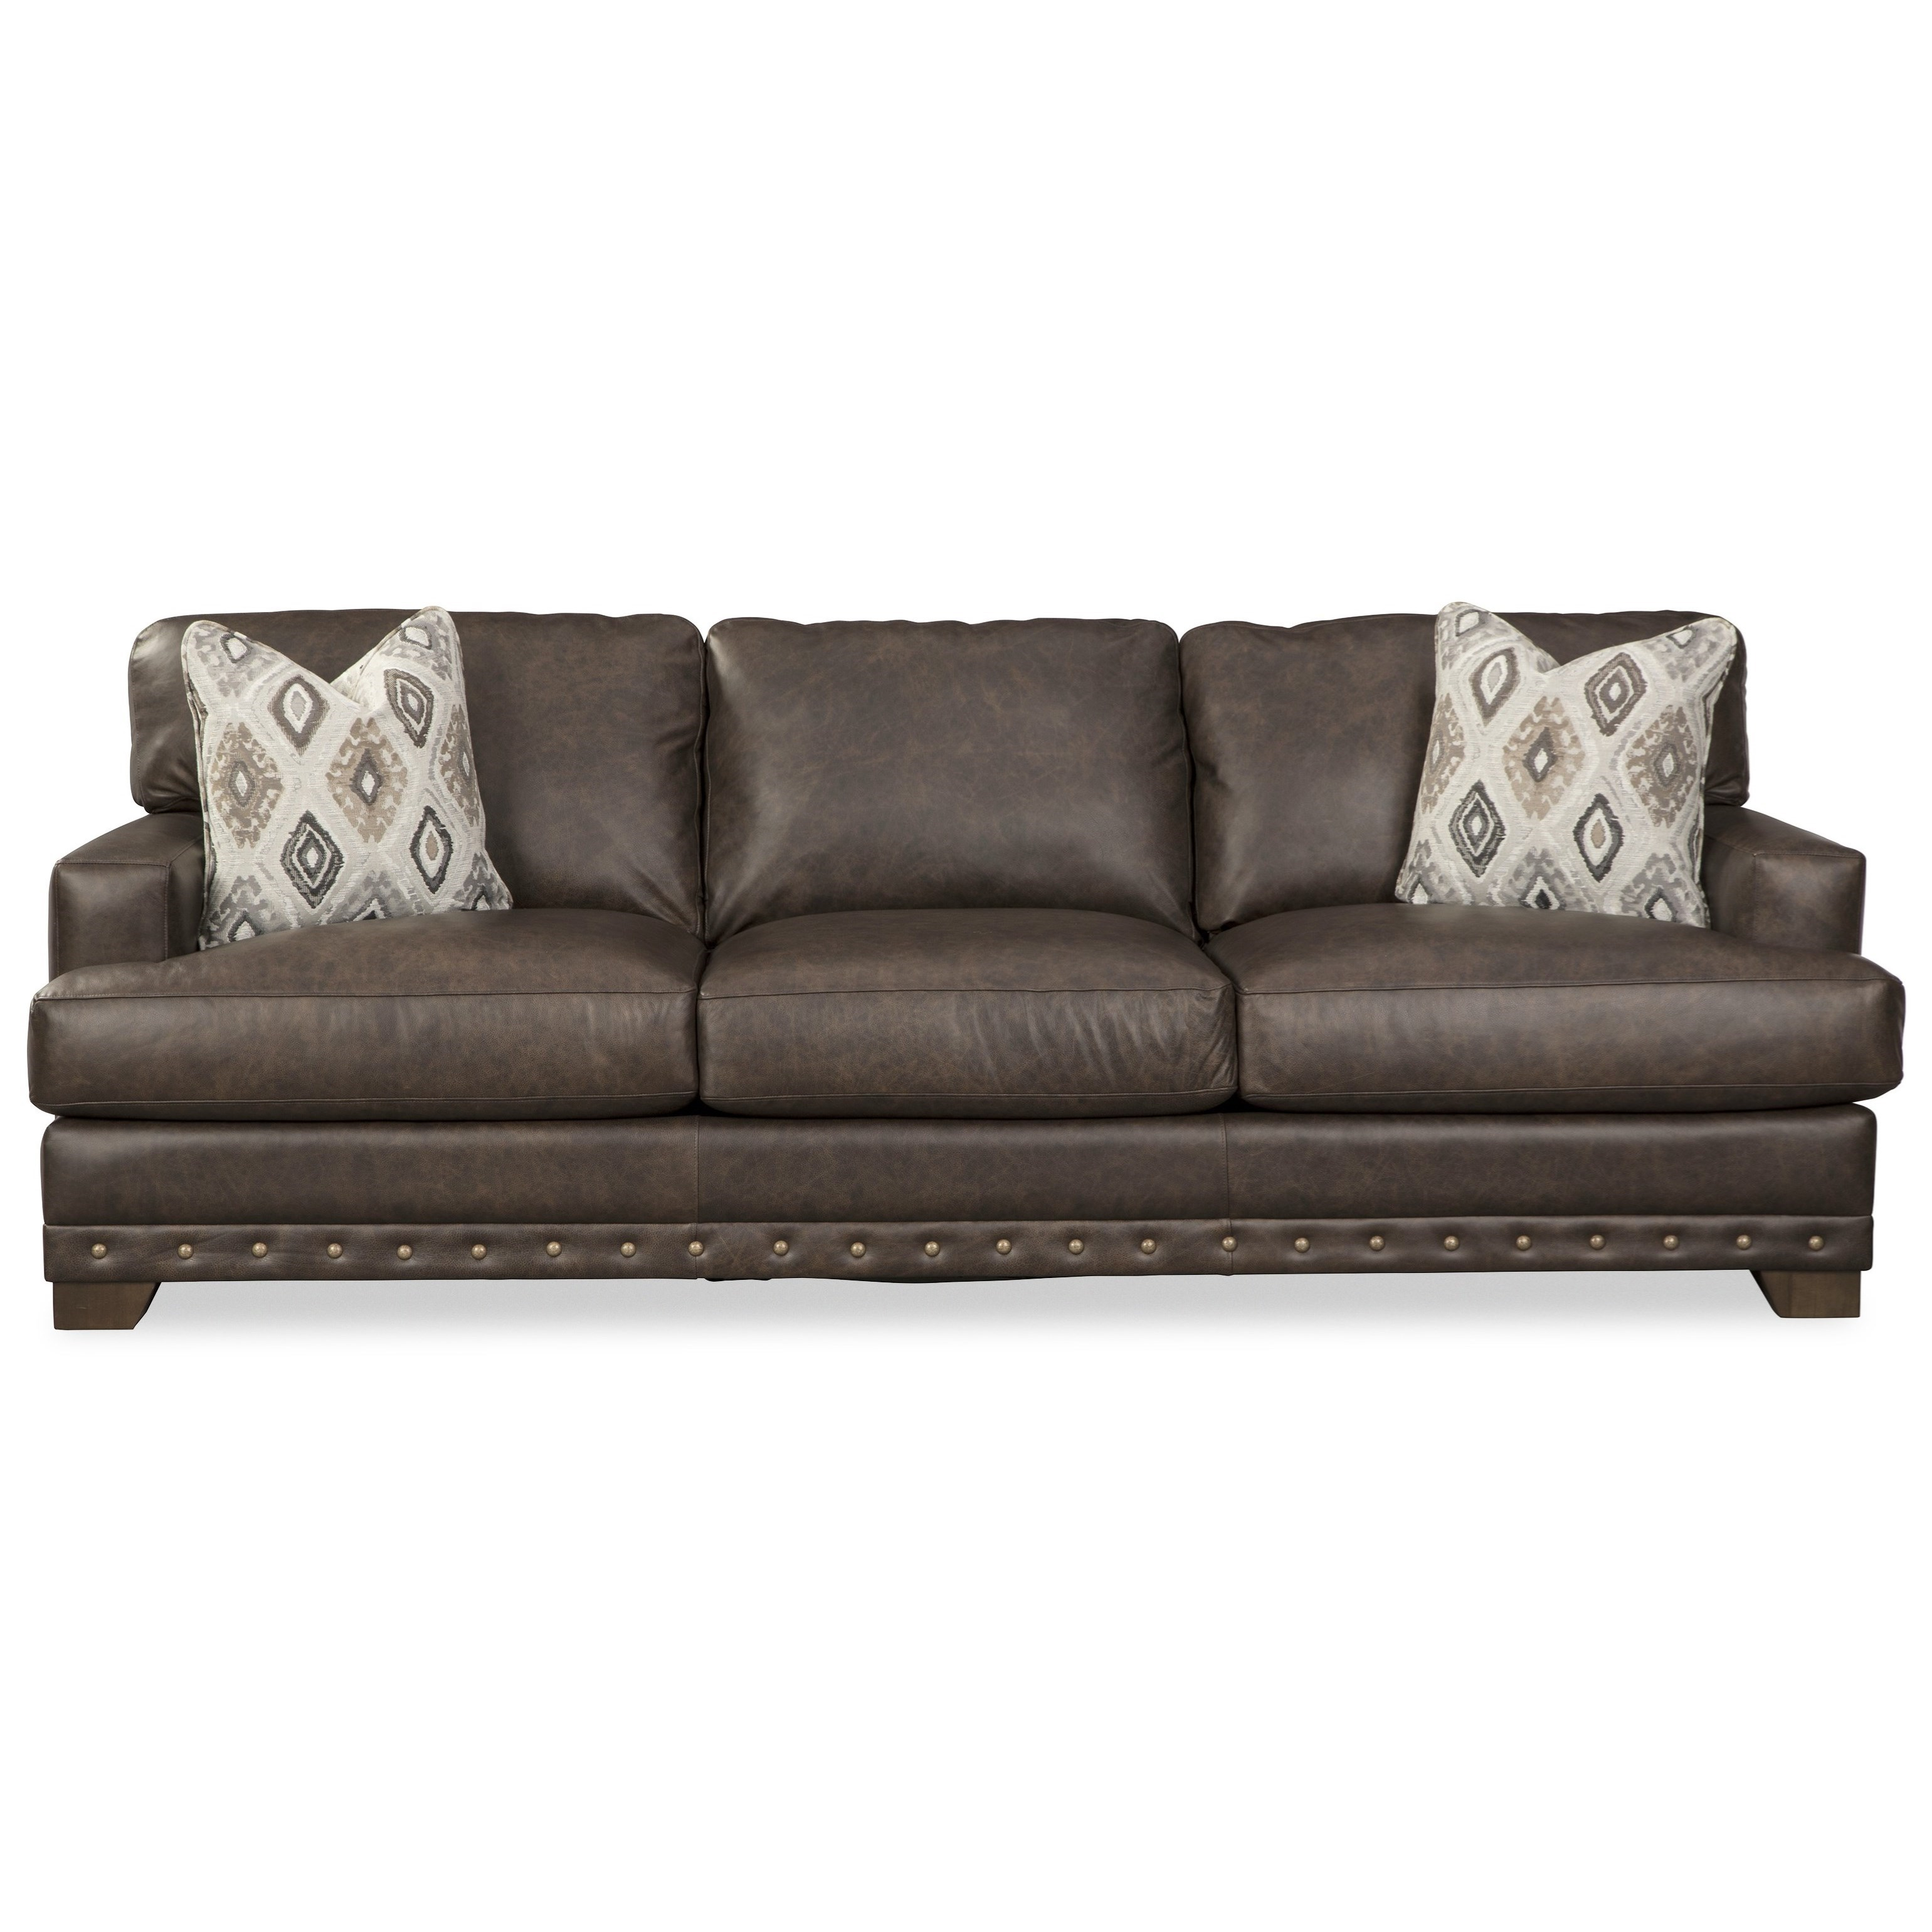 L782750 Sofa w/ Nailheads & Pillows by Craftmaster at Baer's Furniture